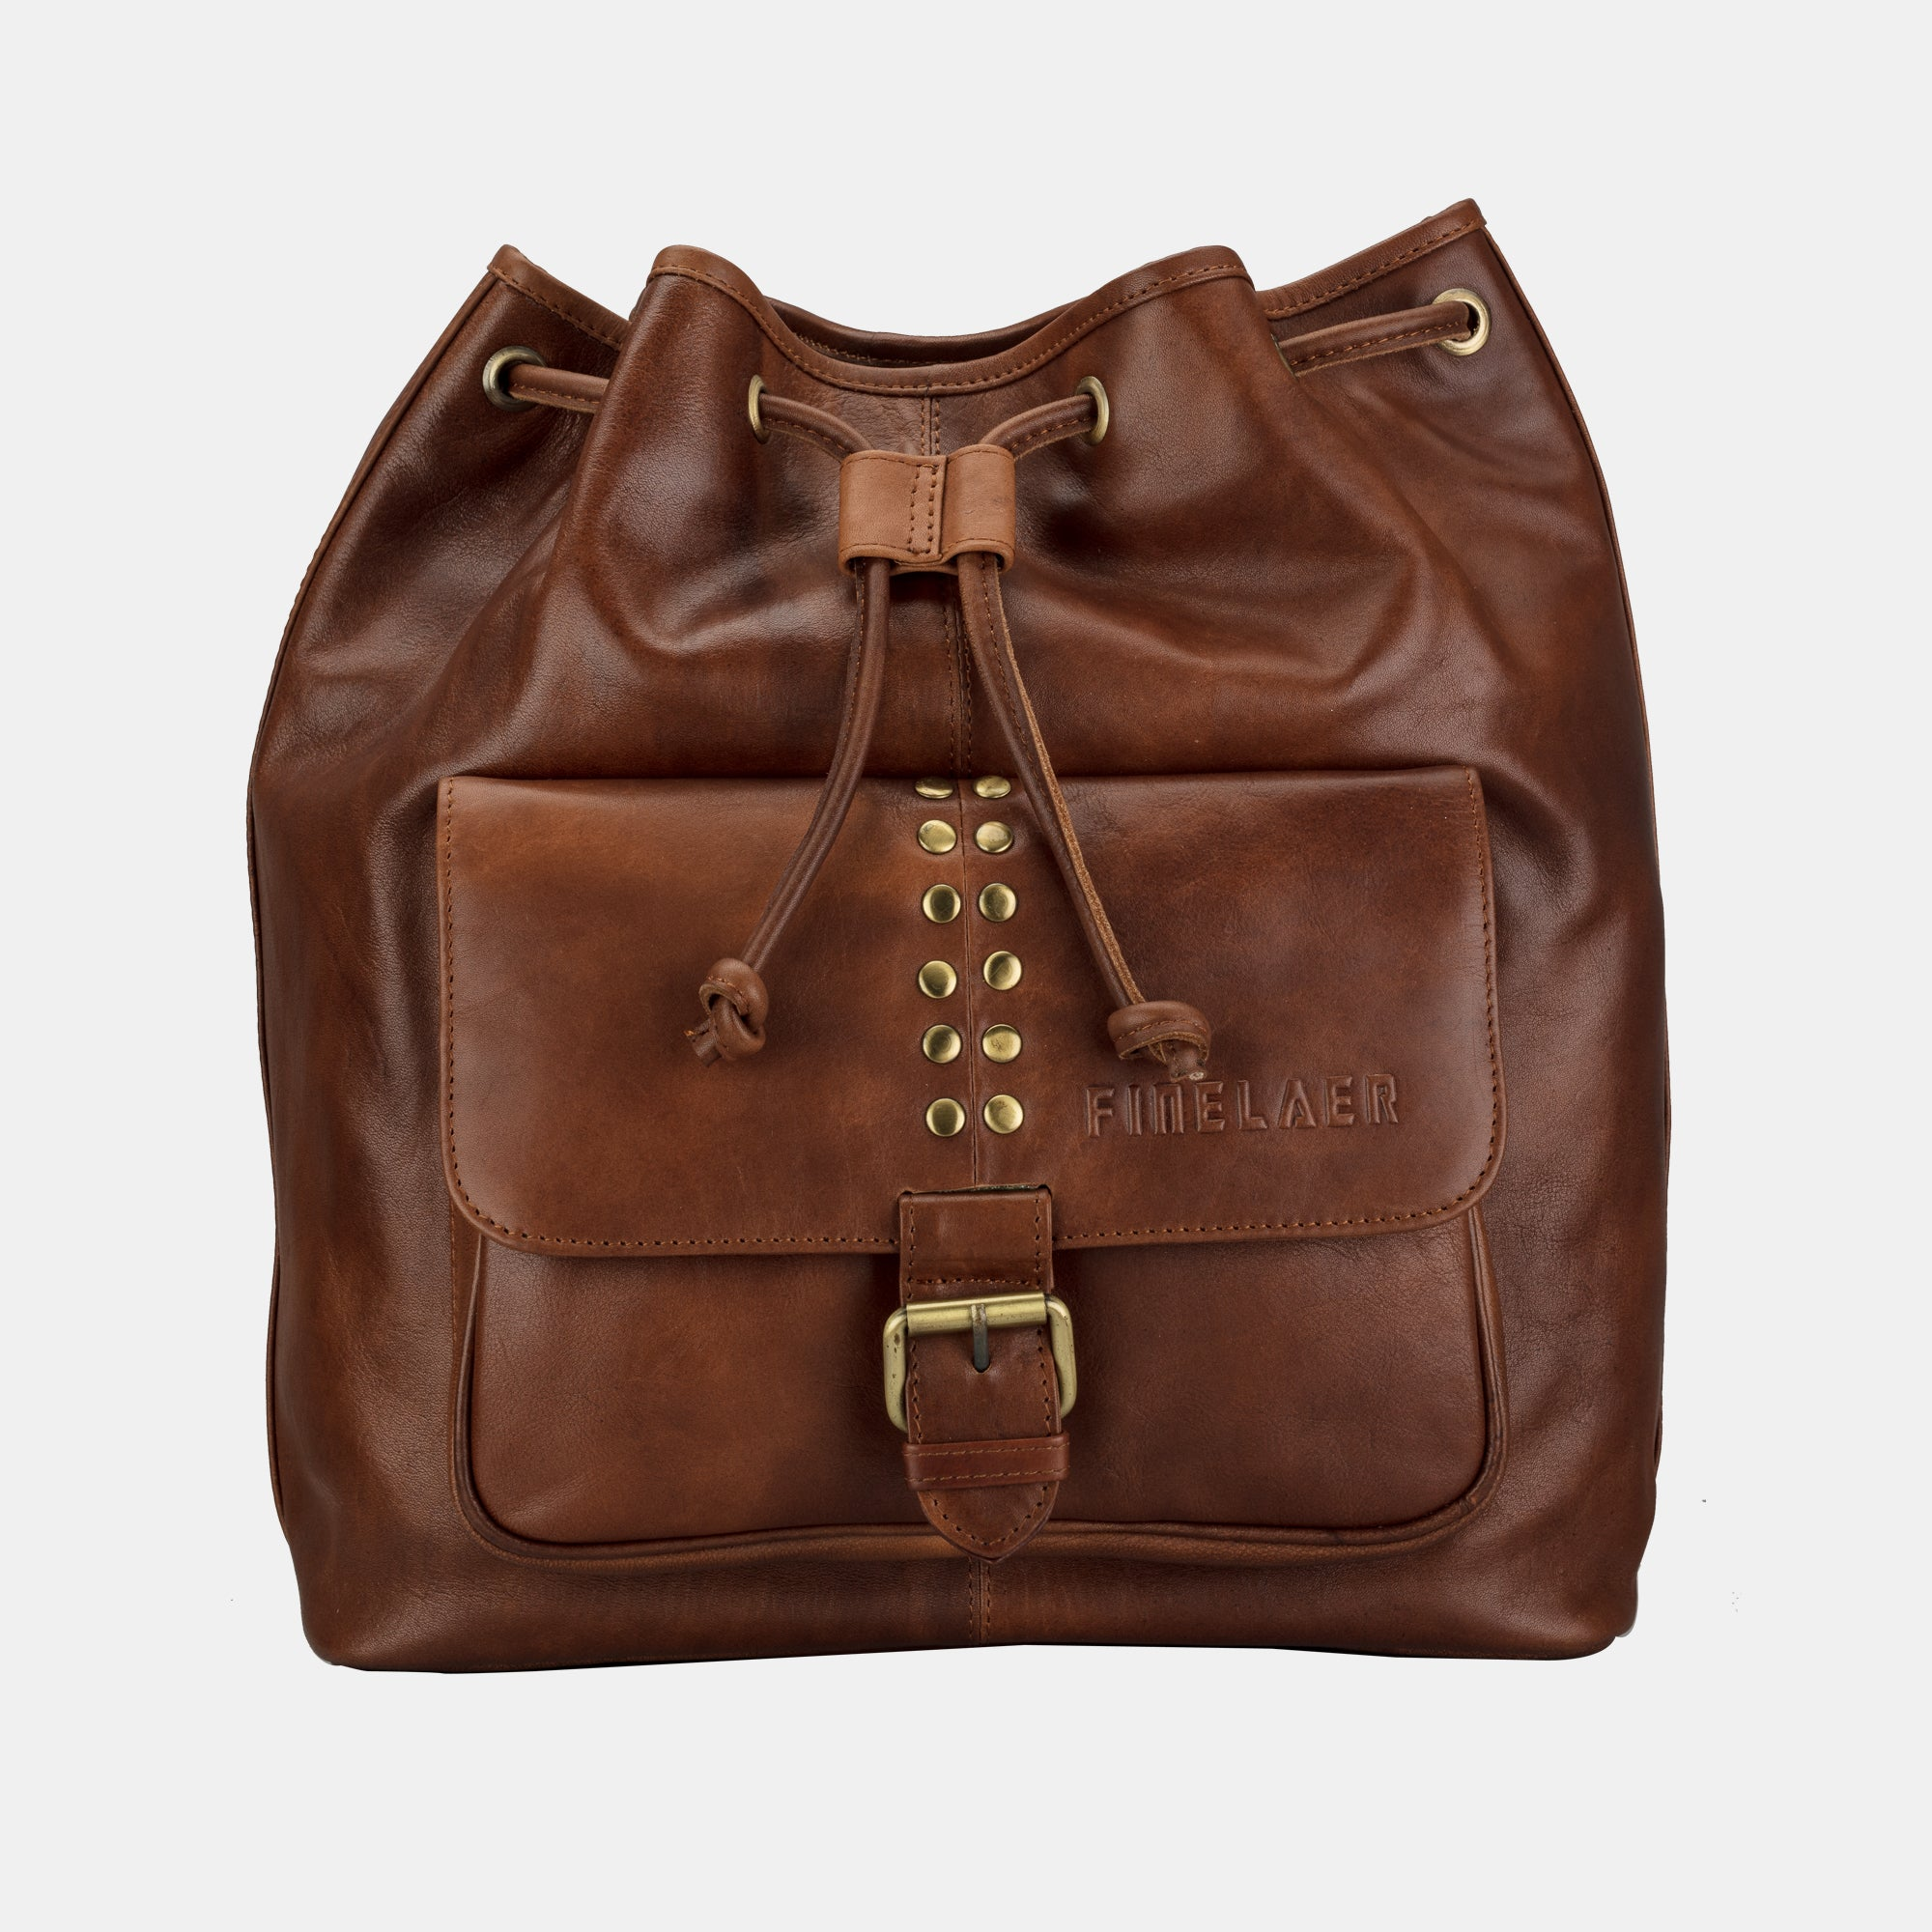 310035c6532a Women Leather Backpack College Laptop Purse Bag Brown